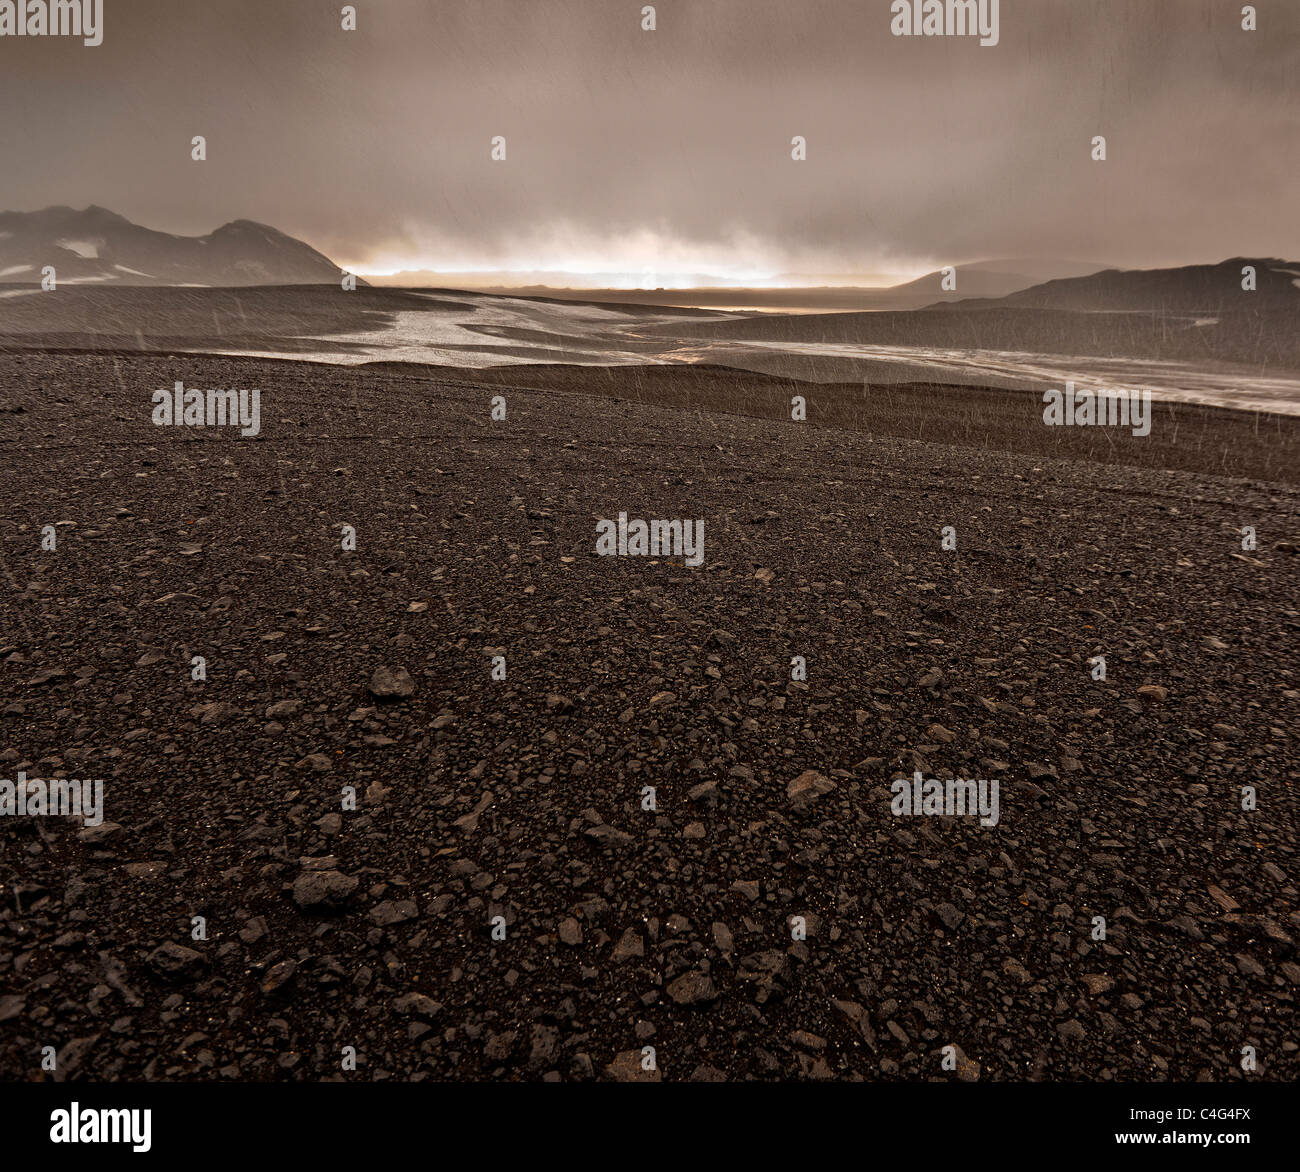 Bad weather with sleet and rain on ash filled glacial landscape, Grimsvotn volcanic eruption, Iceland - Stock Image